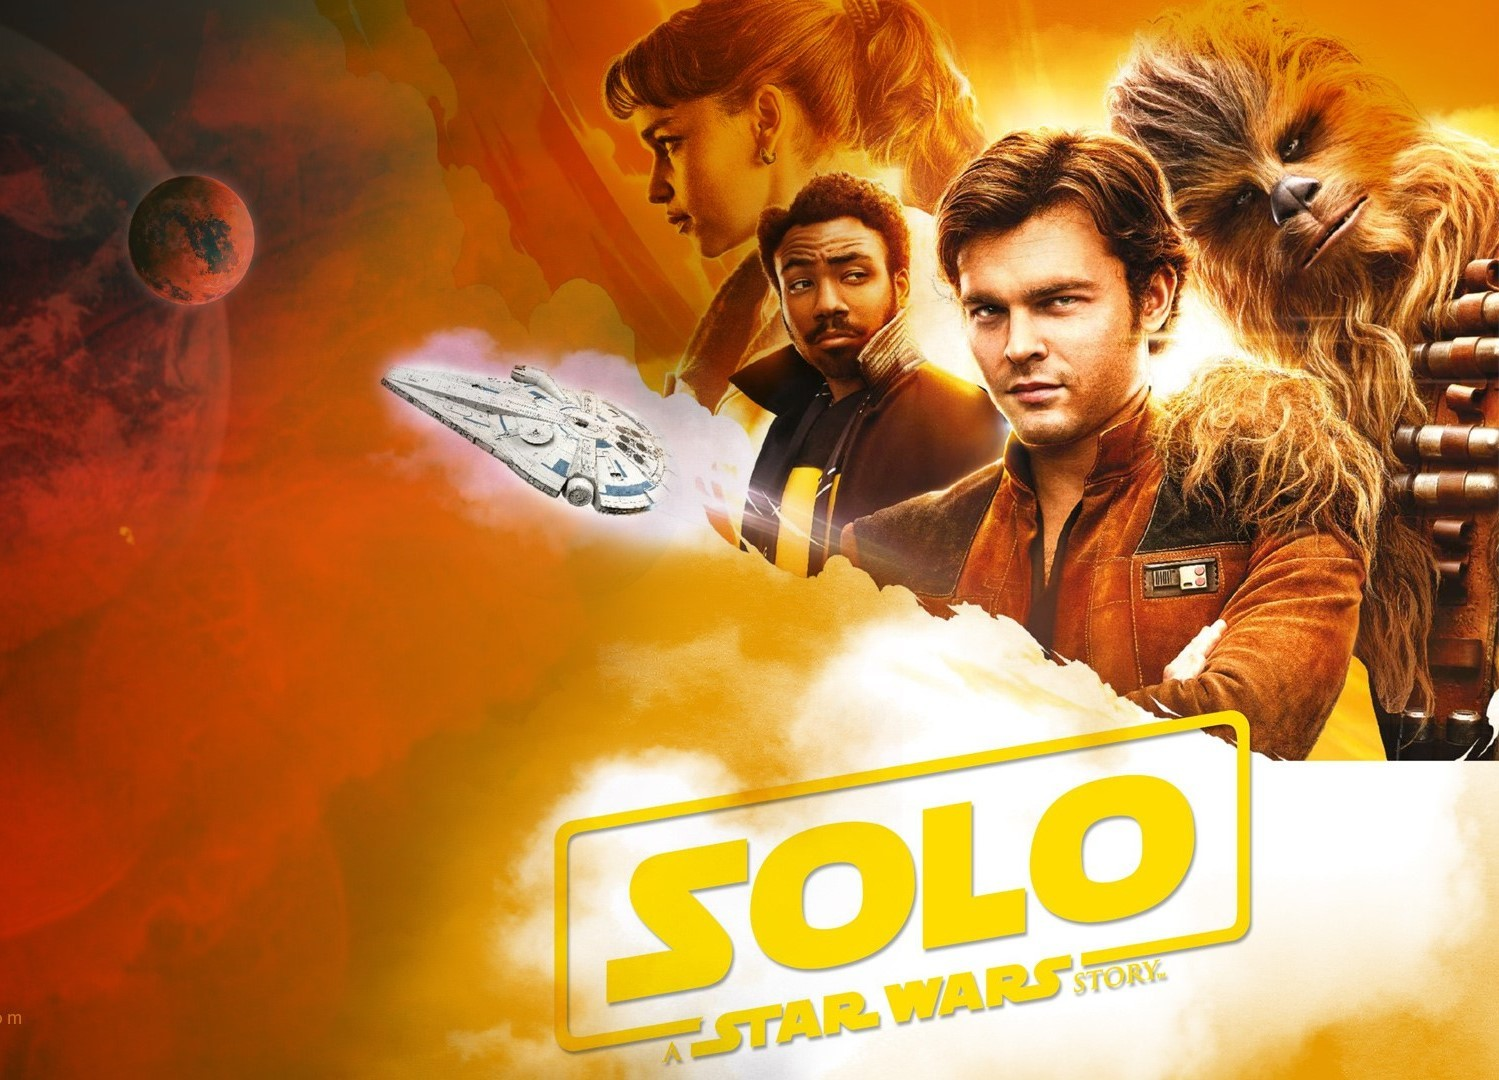 Star Wars Story - Solo